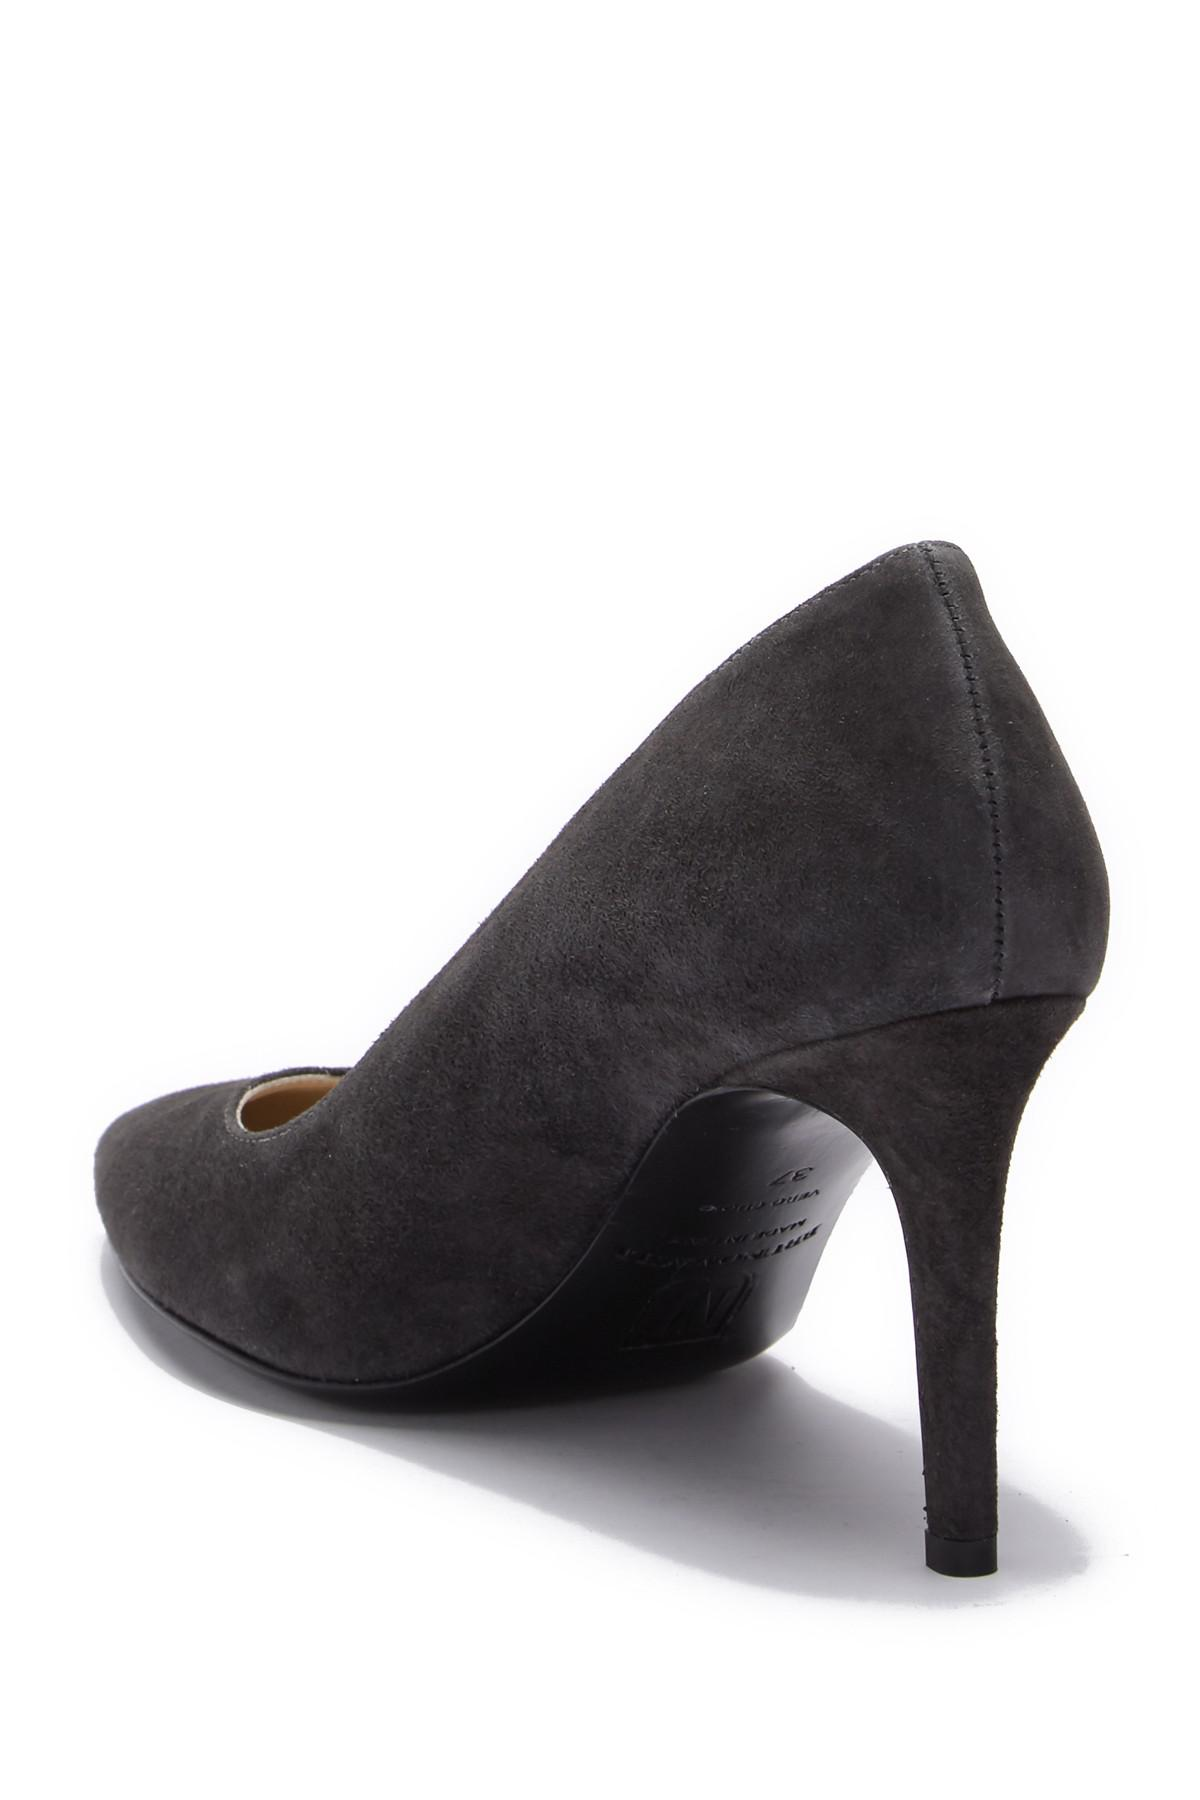 a3848fef4f Bruno Magli Milan Pointed Toe Pump in Gray - Lyst